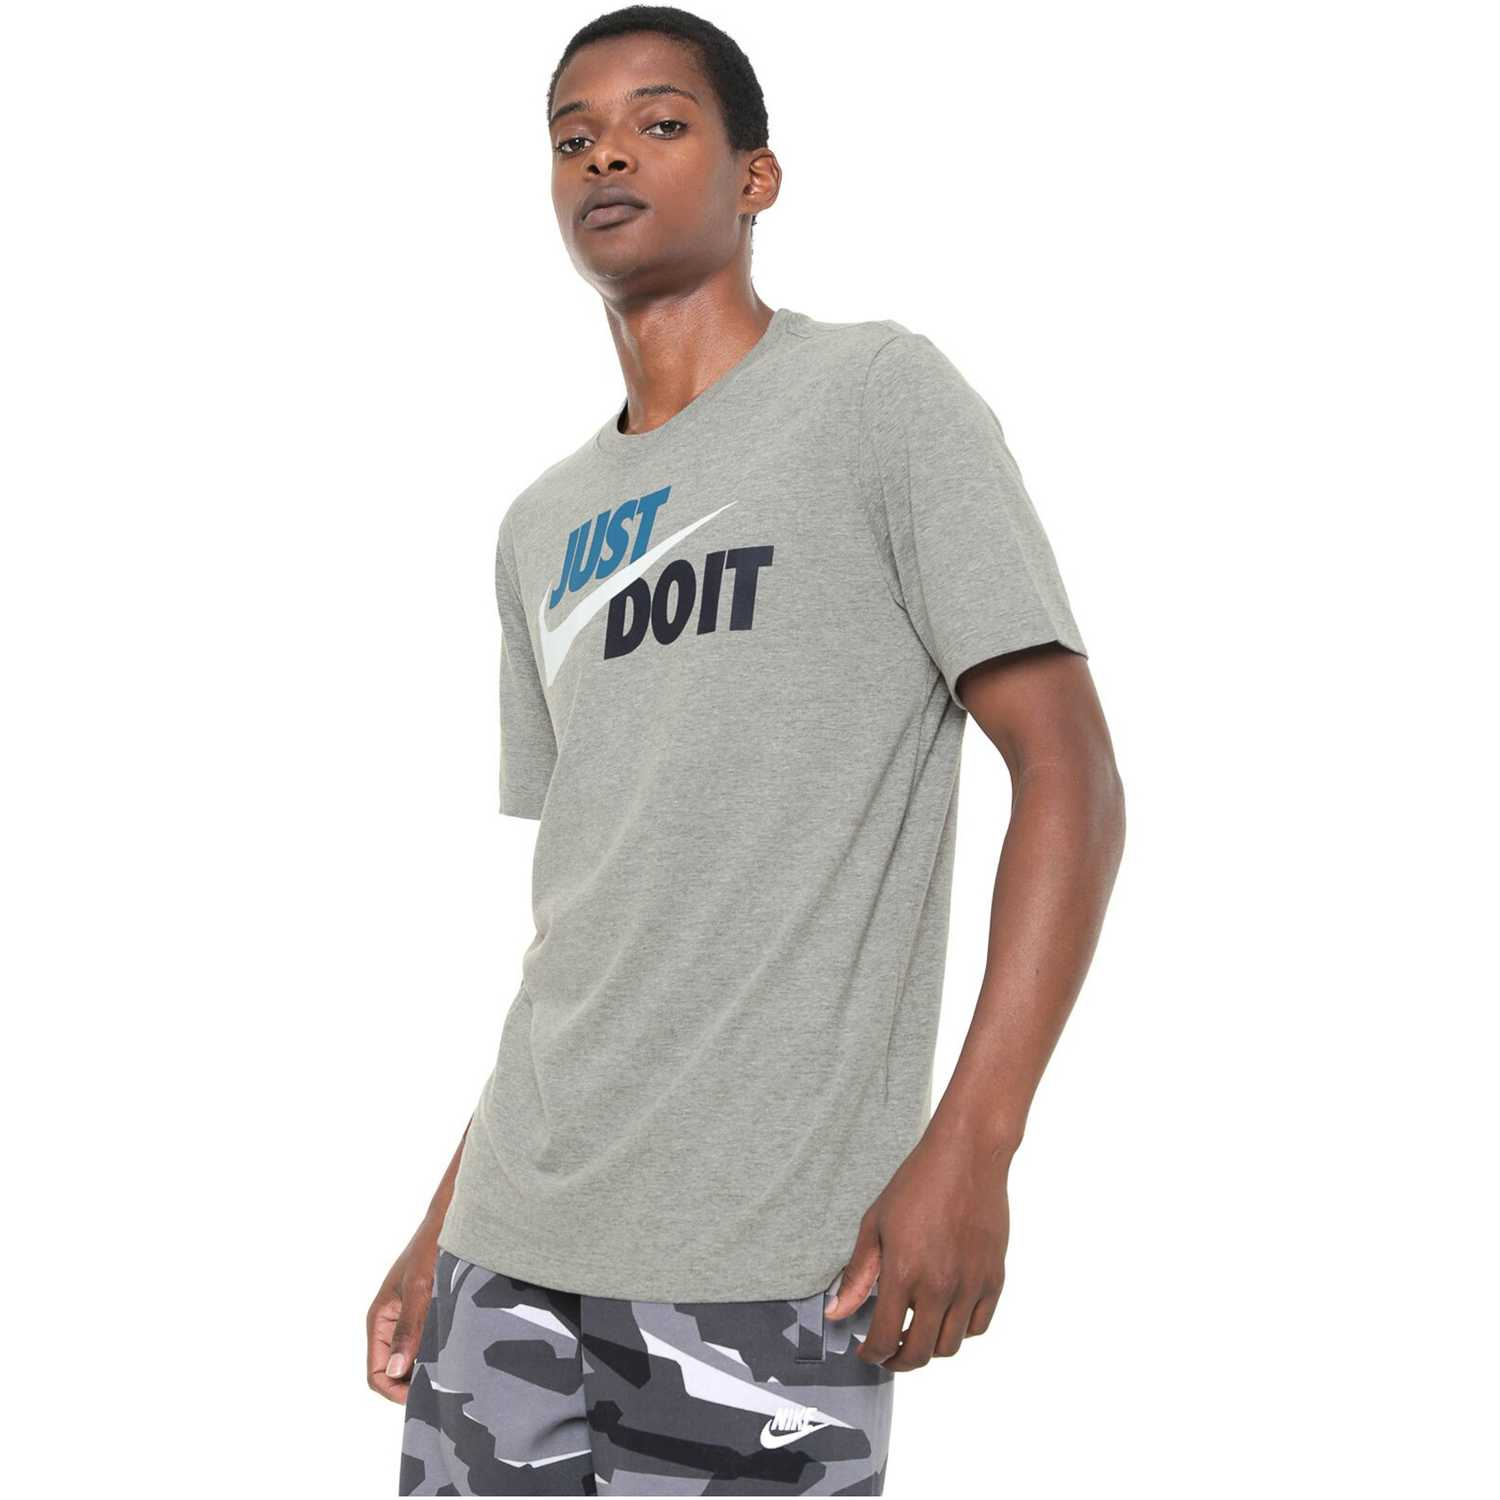 Deportivo de Hombre Nike Gris m nsw tee just do it swoosh